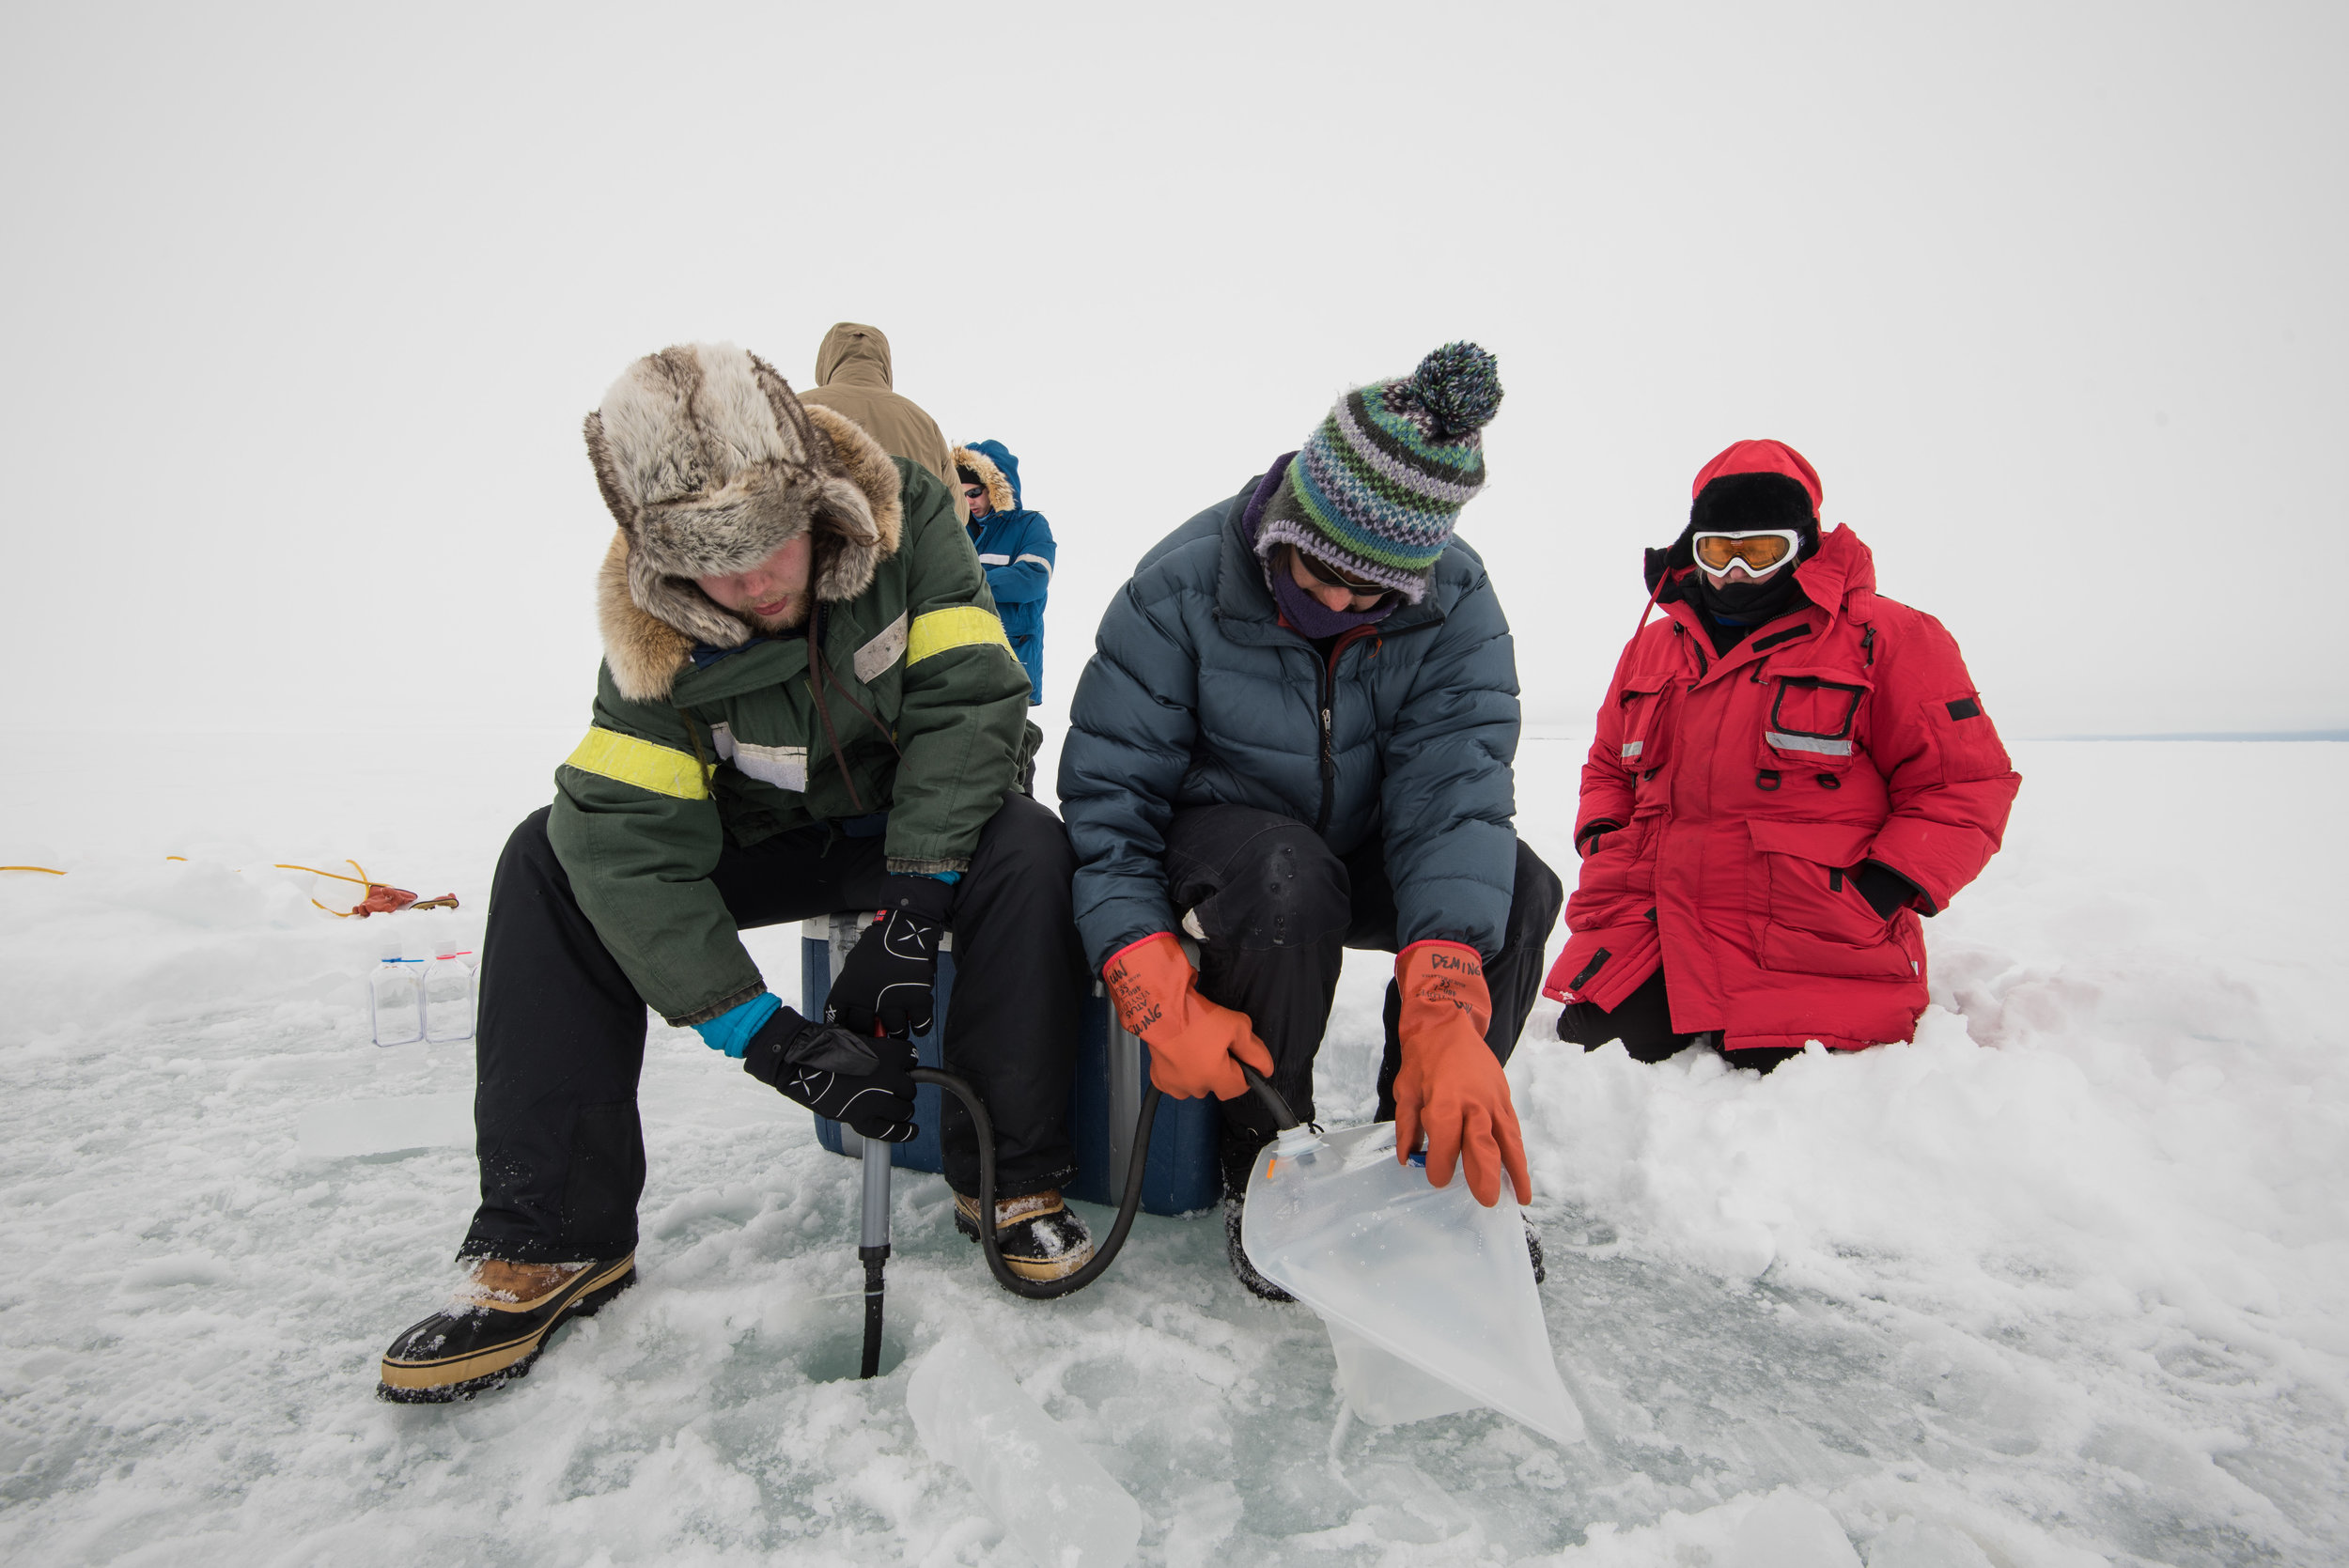 Zac Cooper, Shelly Carpenter and Jody Deming collecting seawater under the ice.Photo credit: A. Torstensson